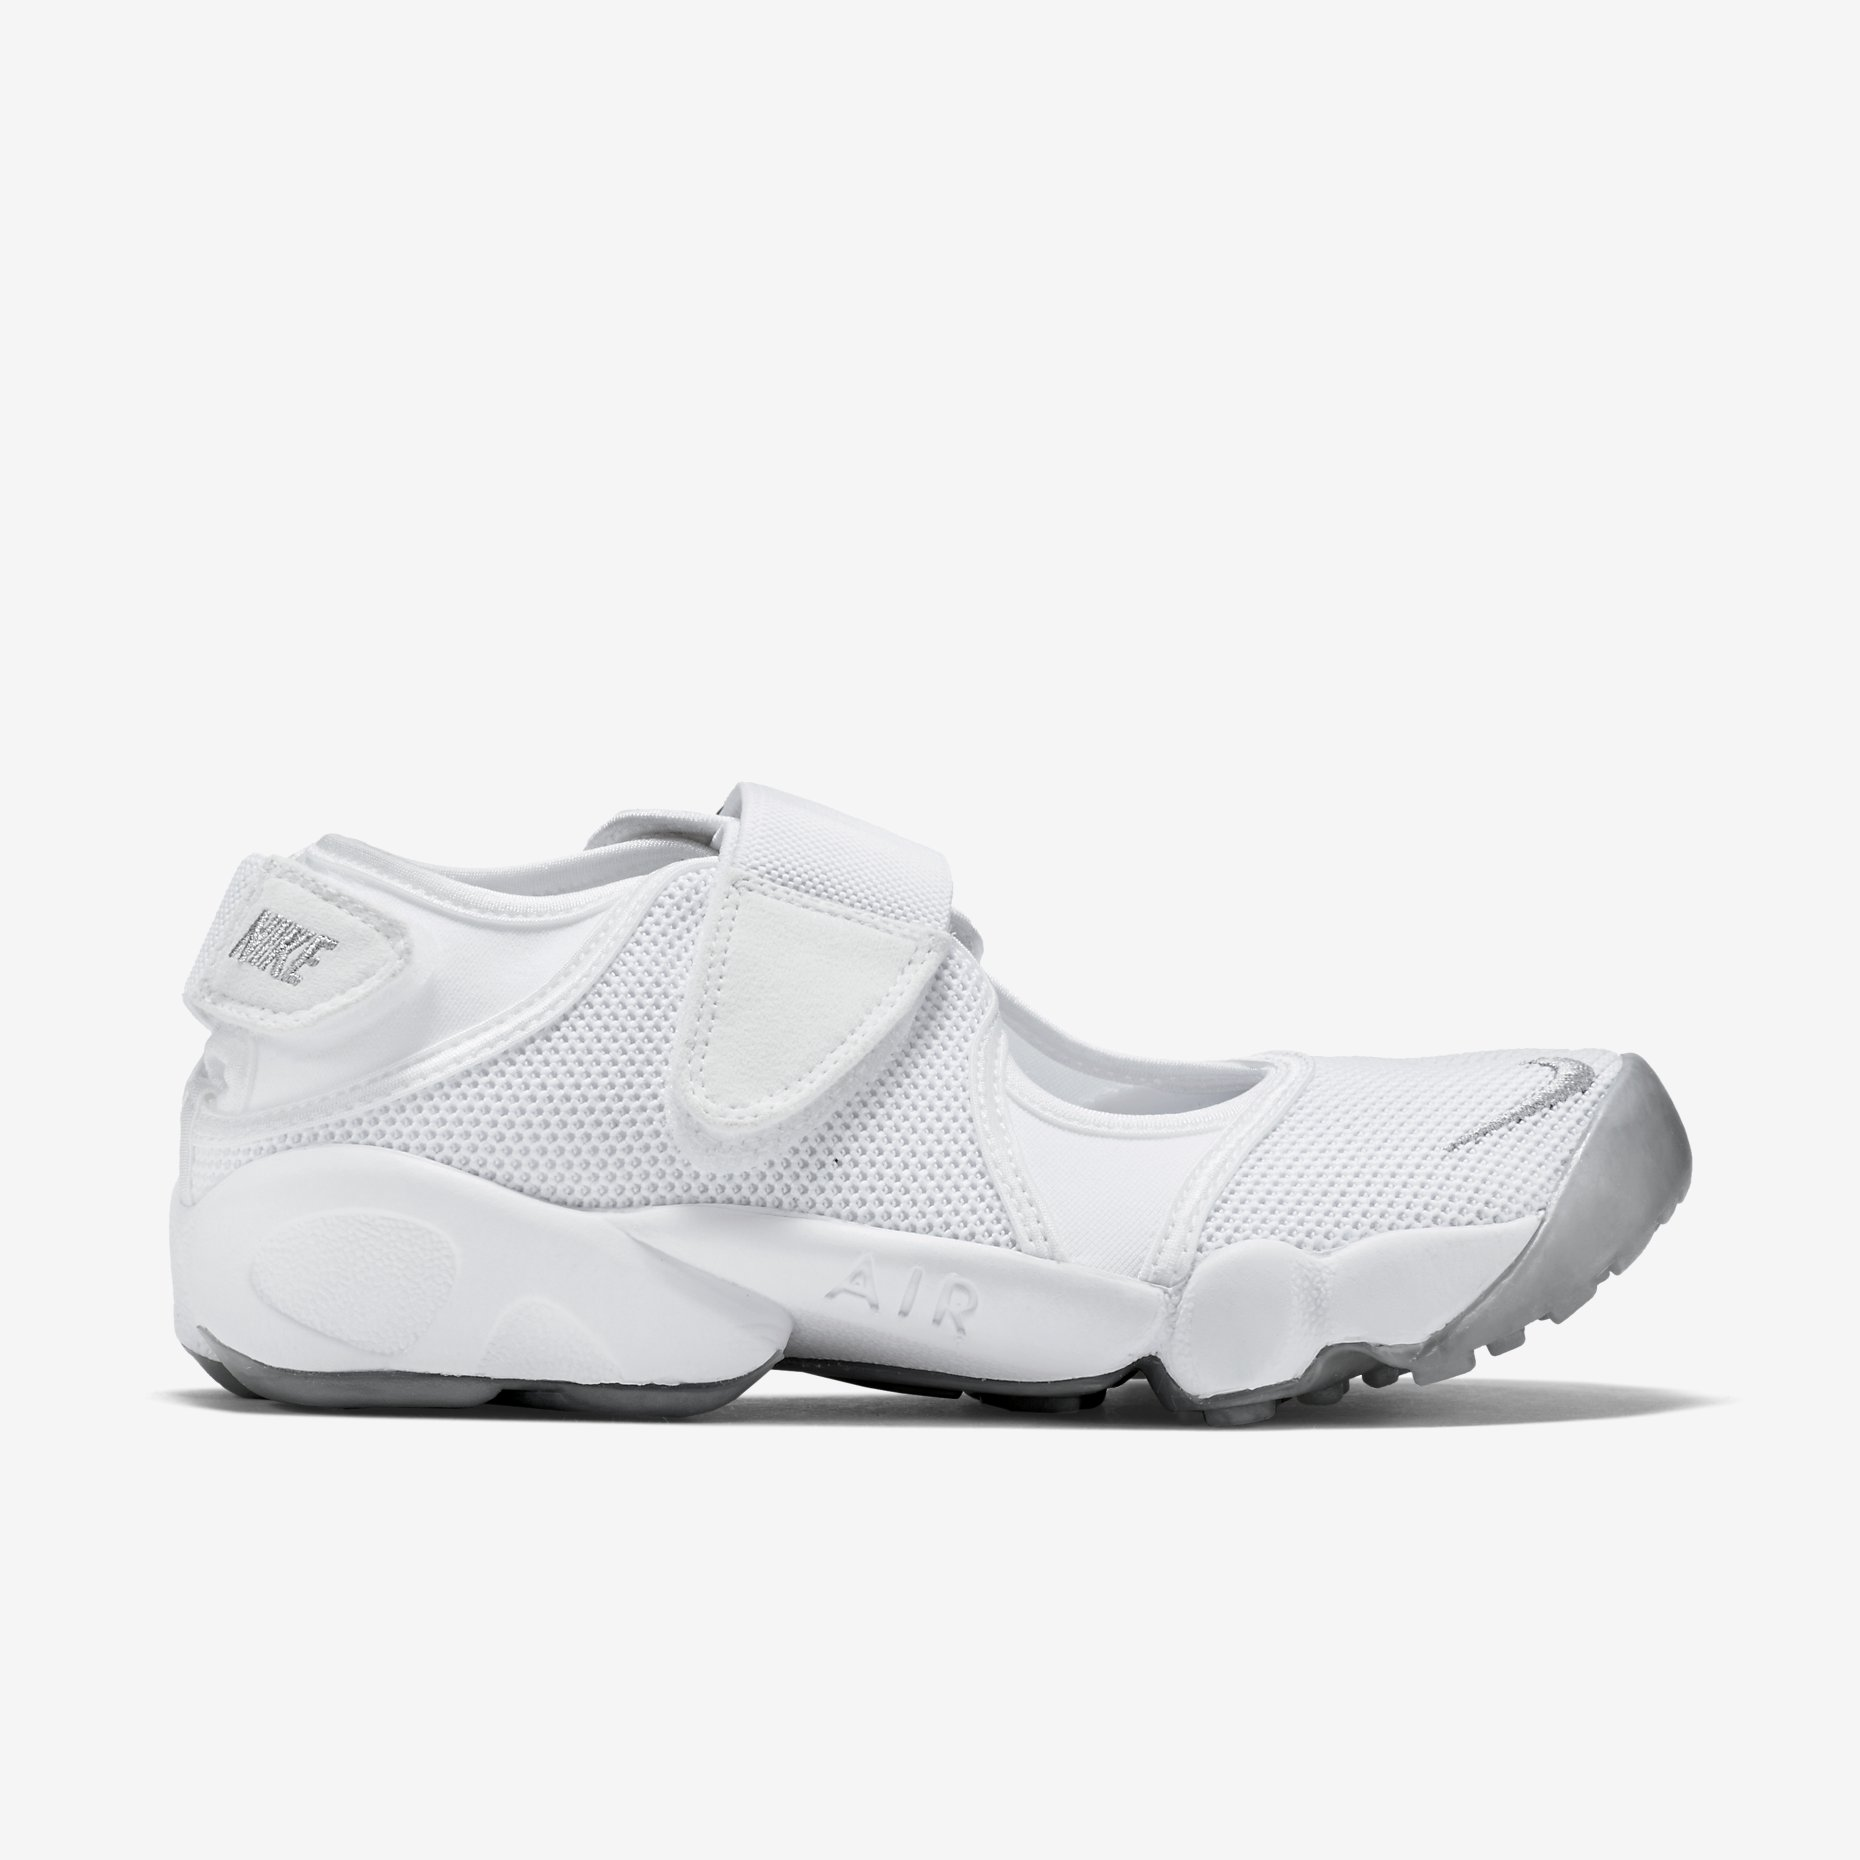 nike air rift triple white 315766 110 sneakers addict. Black Bedroom Furniture Sets. Home Design Ideas